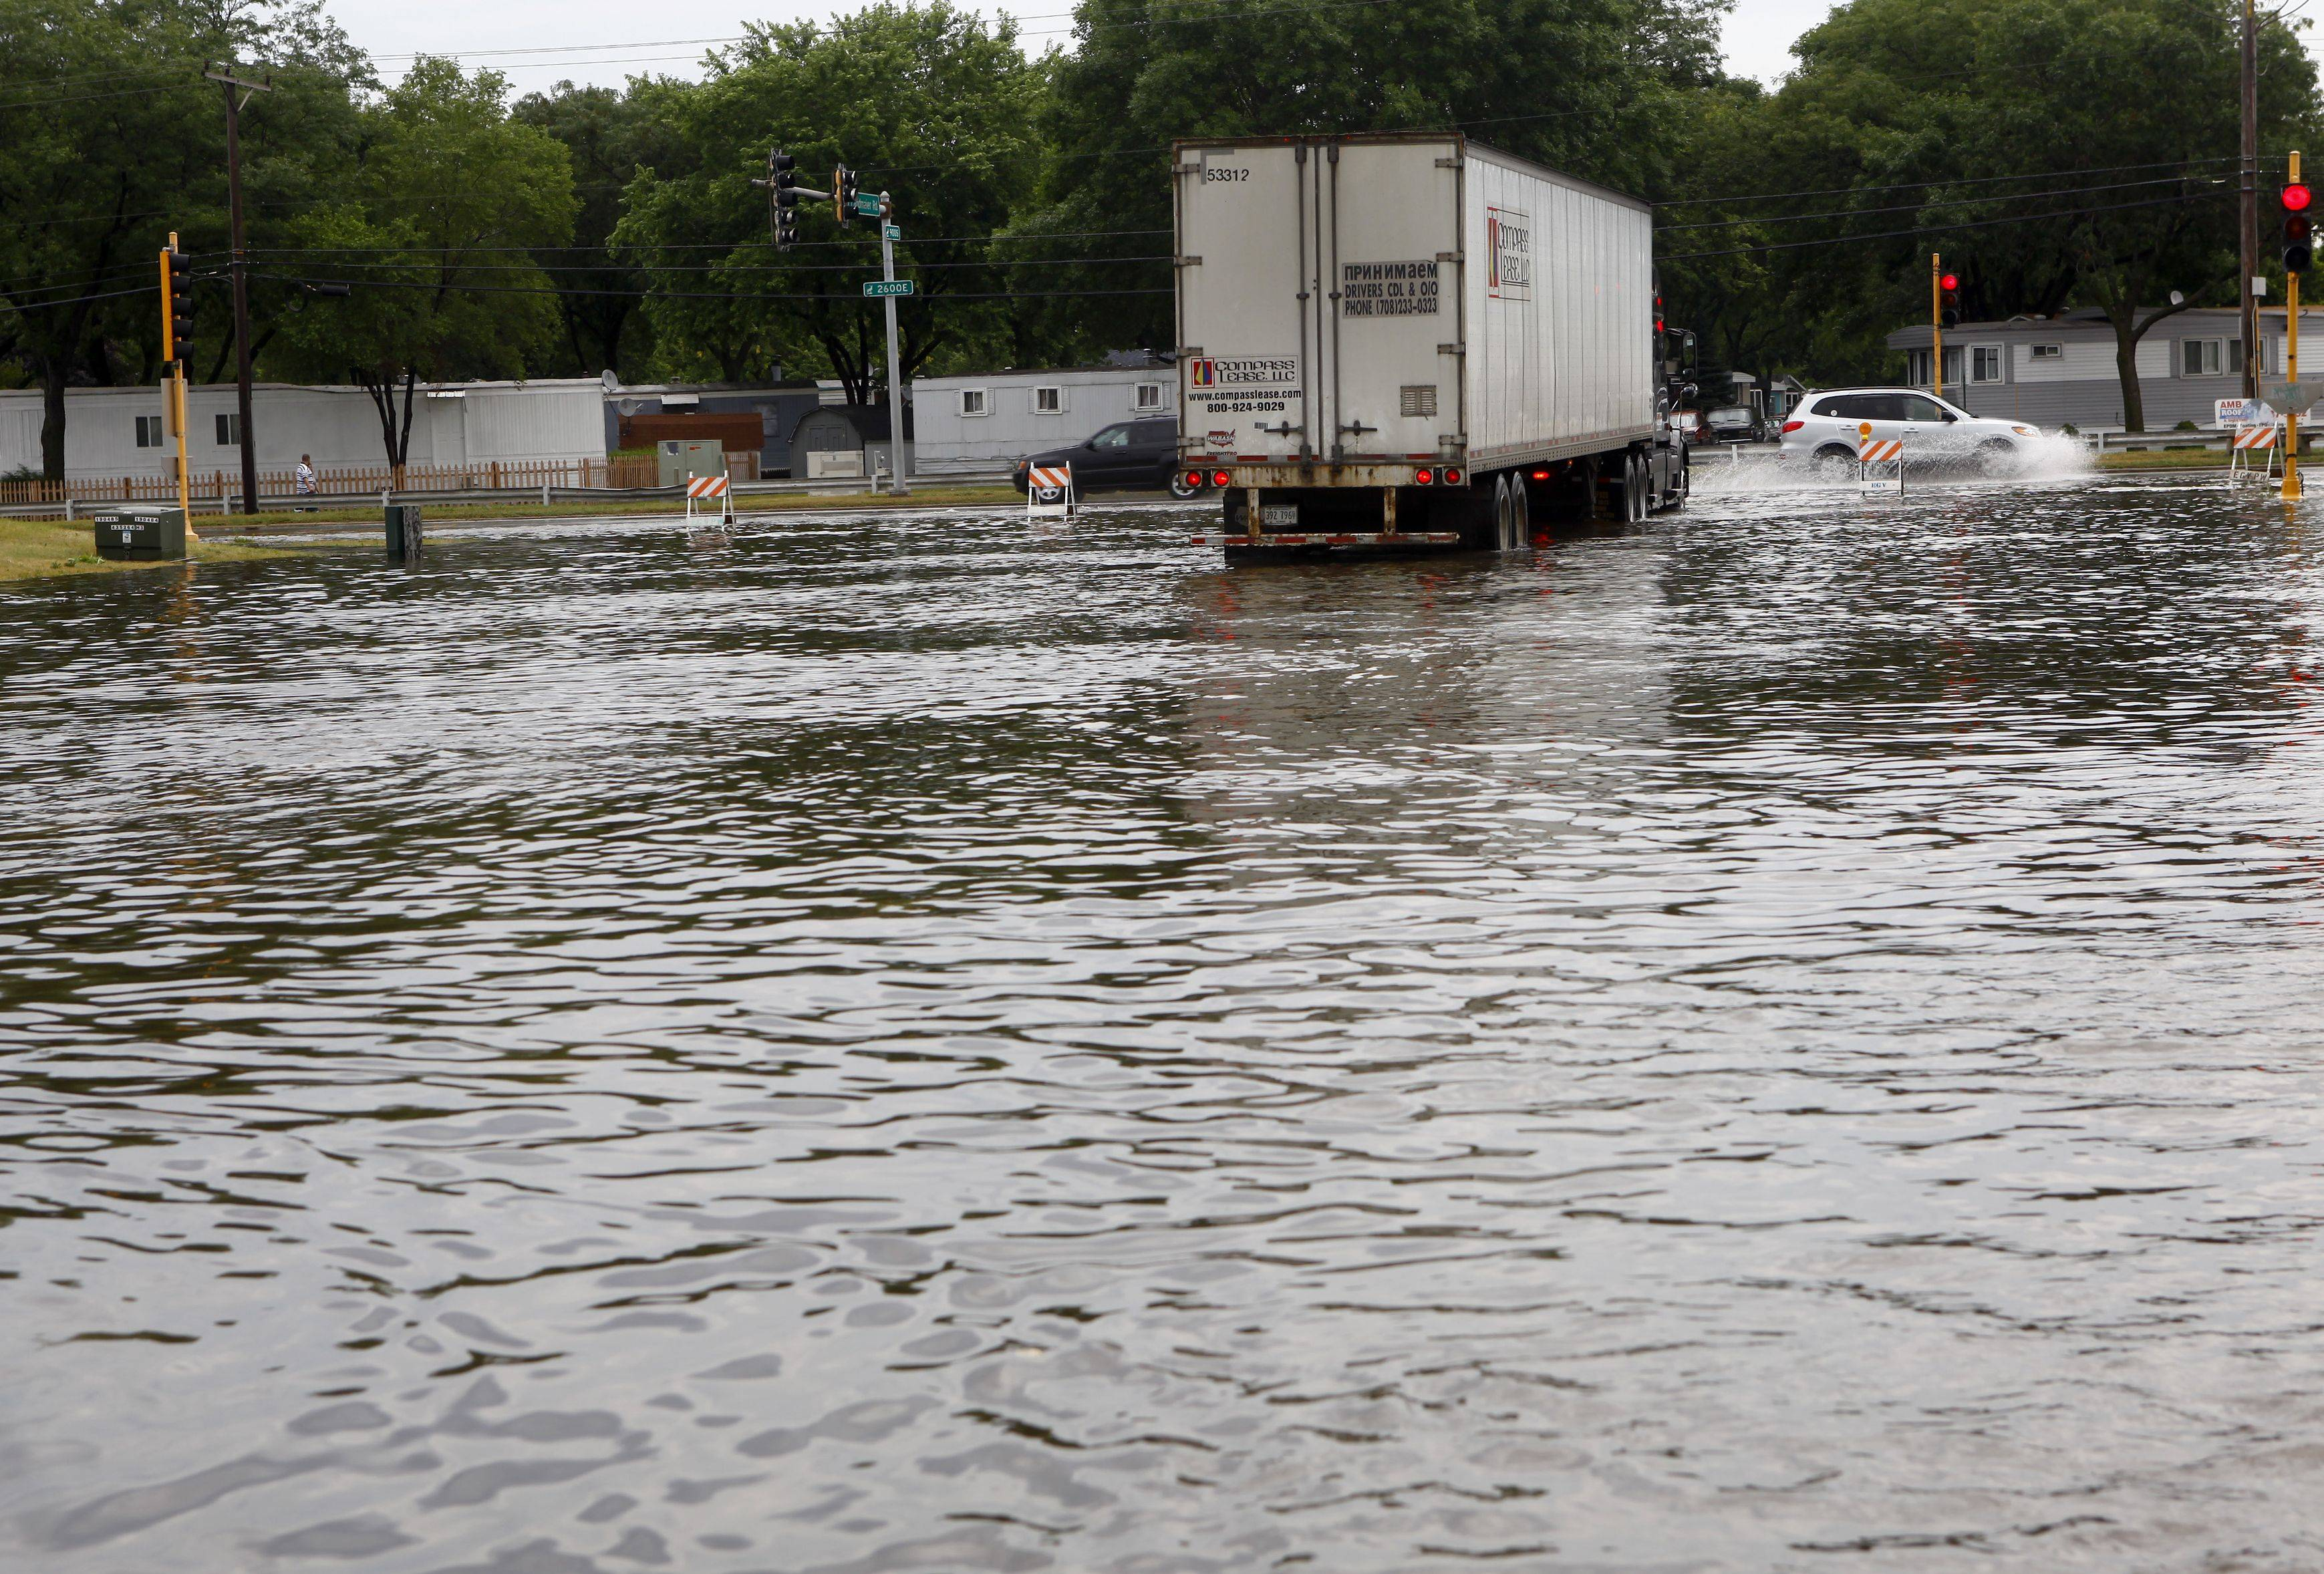 Excessive rains battered the suburbs in July 2011, shutting down arterials like Landmeier Road in Des Plaines.